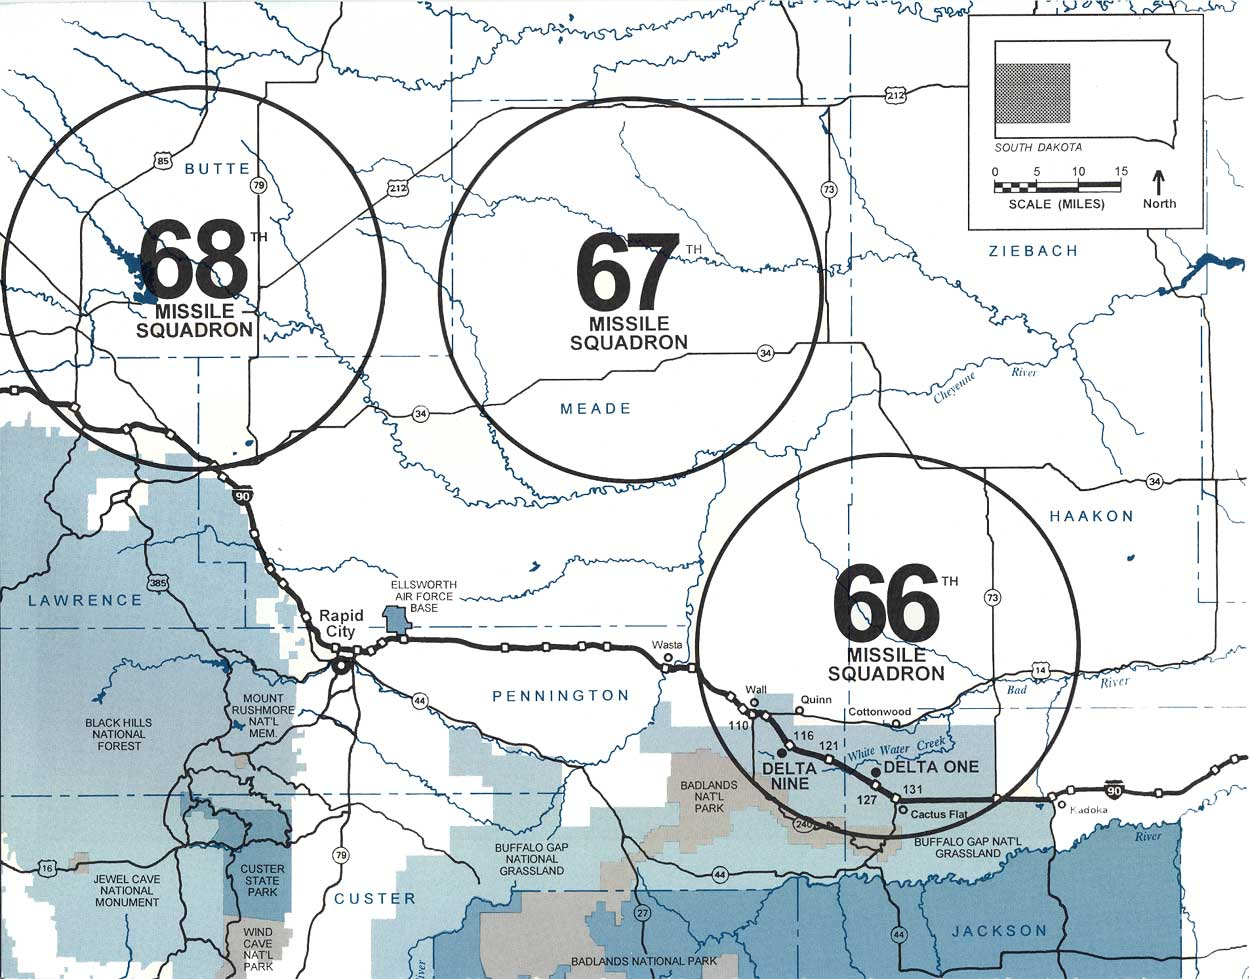 Map Showing The General Area Of The 3 Squadrons 66th 67th 68th Which Made Up The 44th Missile Wing